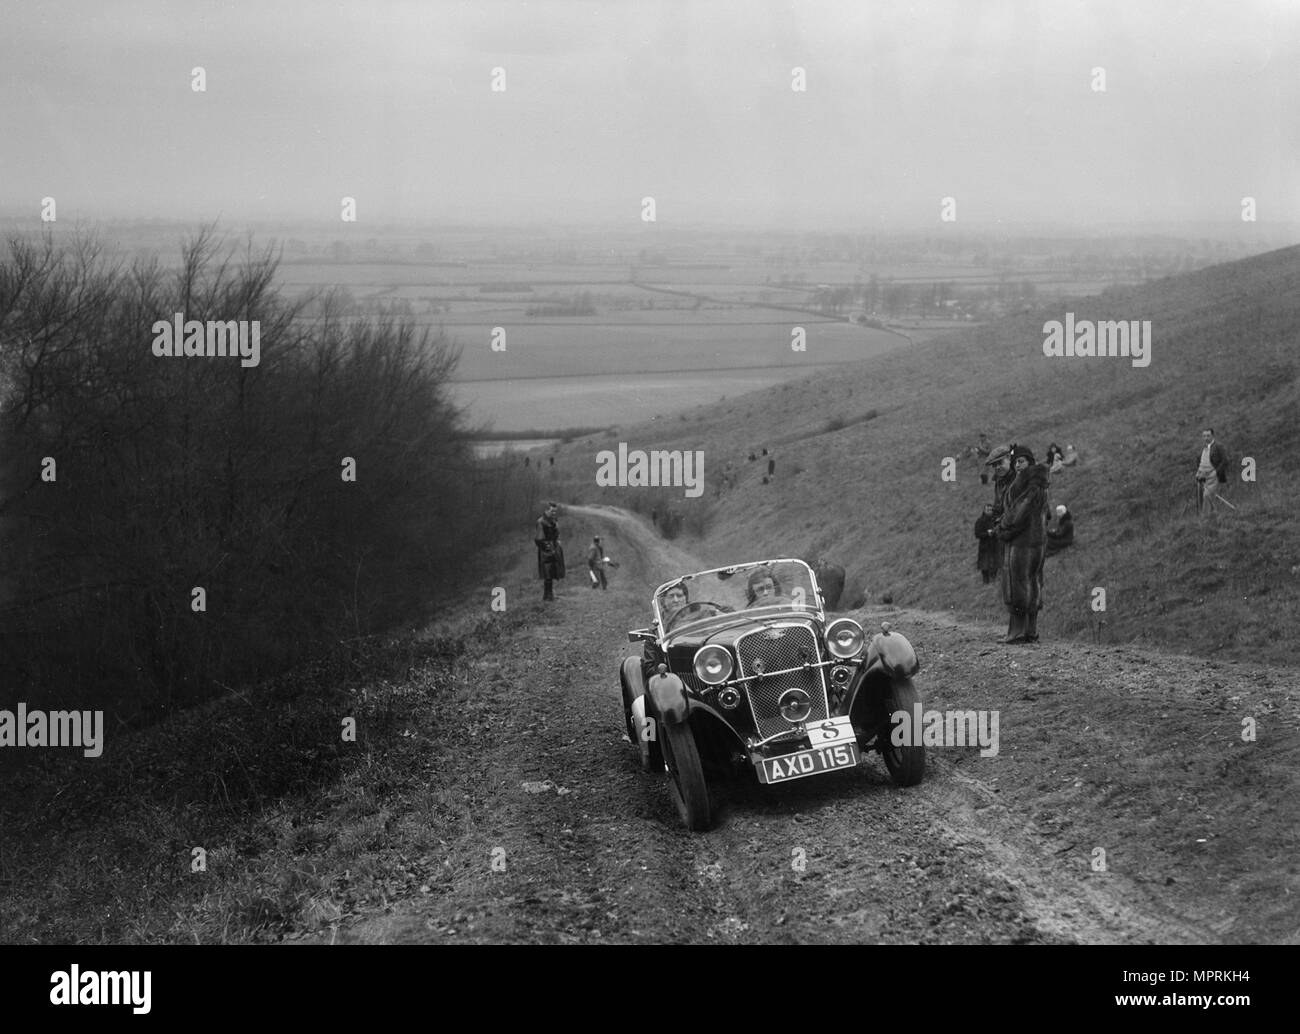 Singer 2-seater sports competing in a trial, Crowell Hill, Chinnor, Oxfordshire, 1930s. Artist: Bill Brunell. - Stock Image